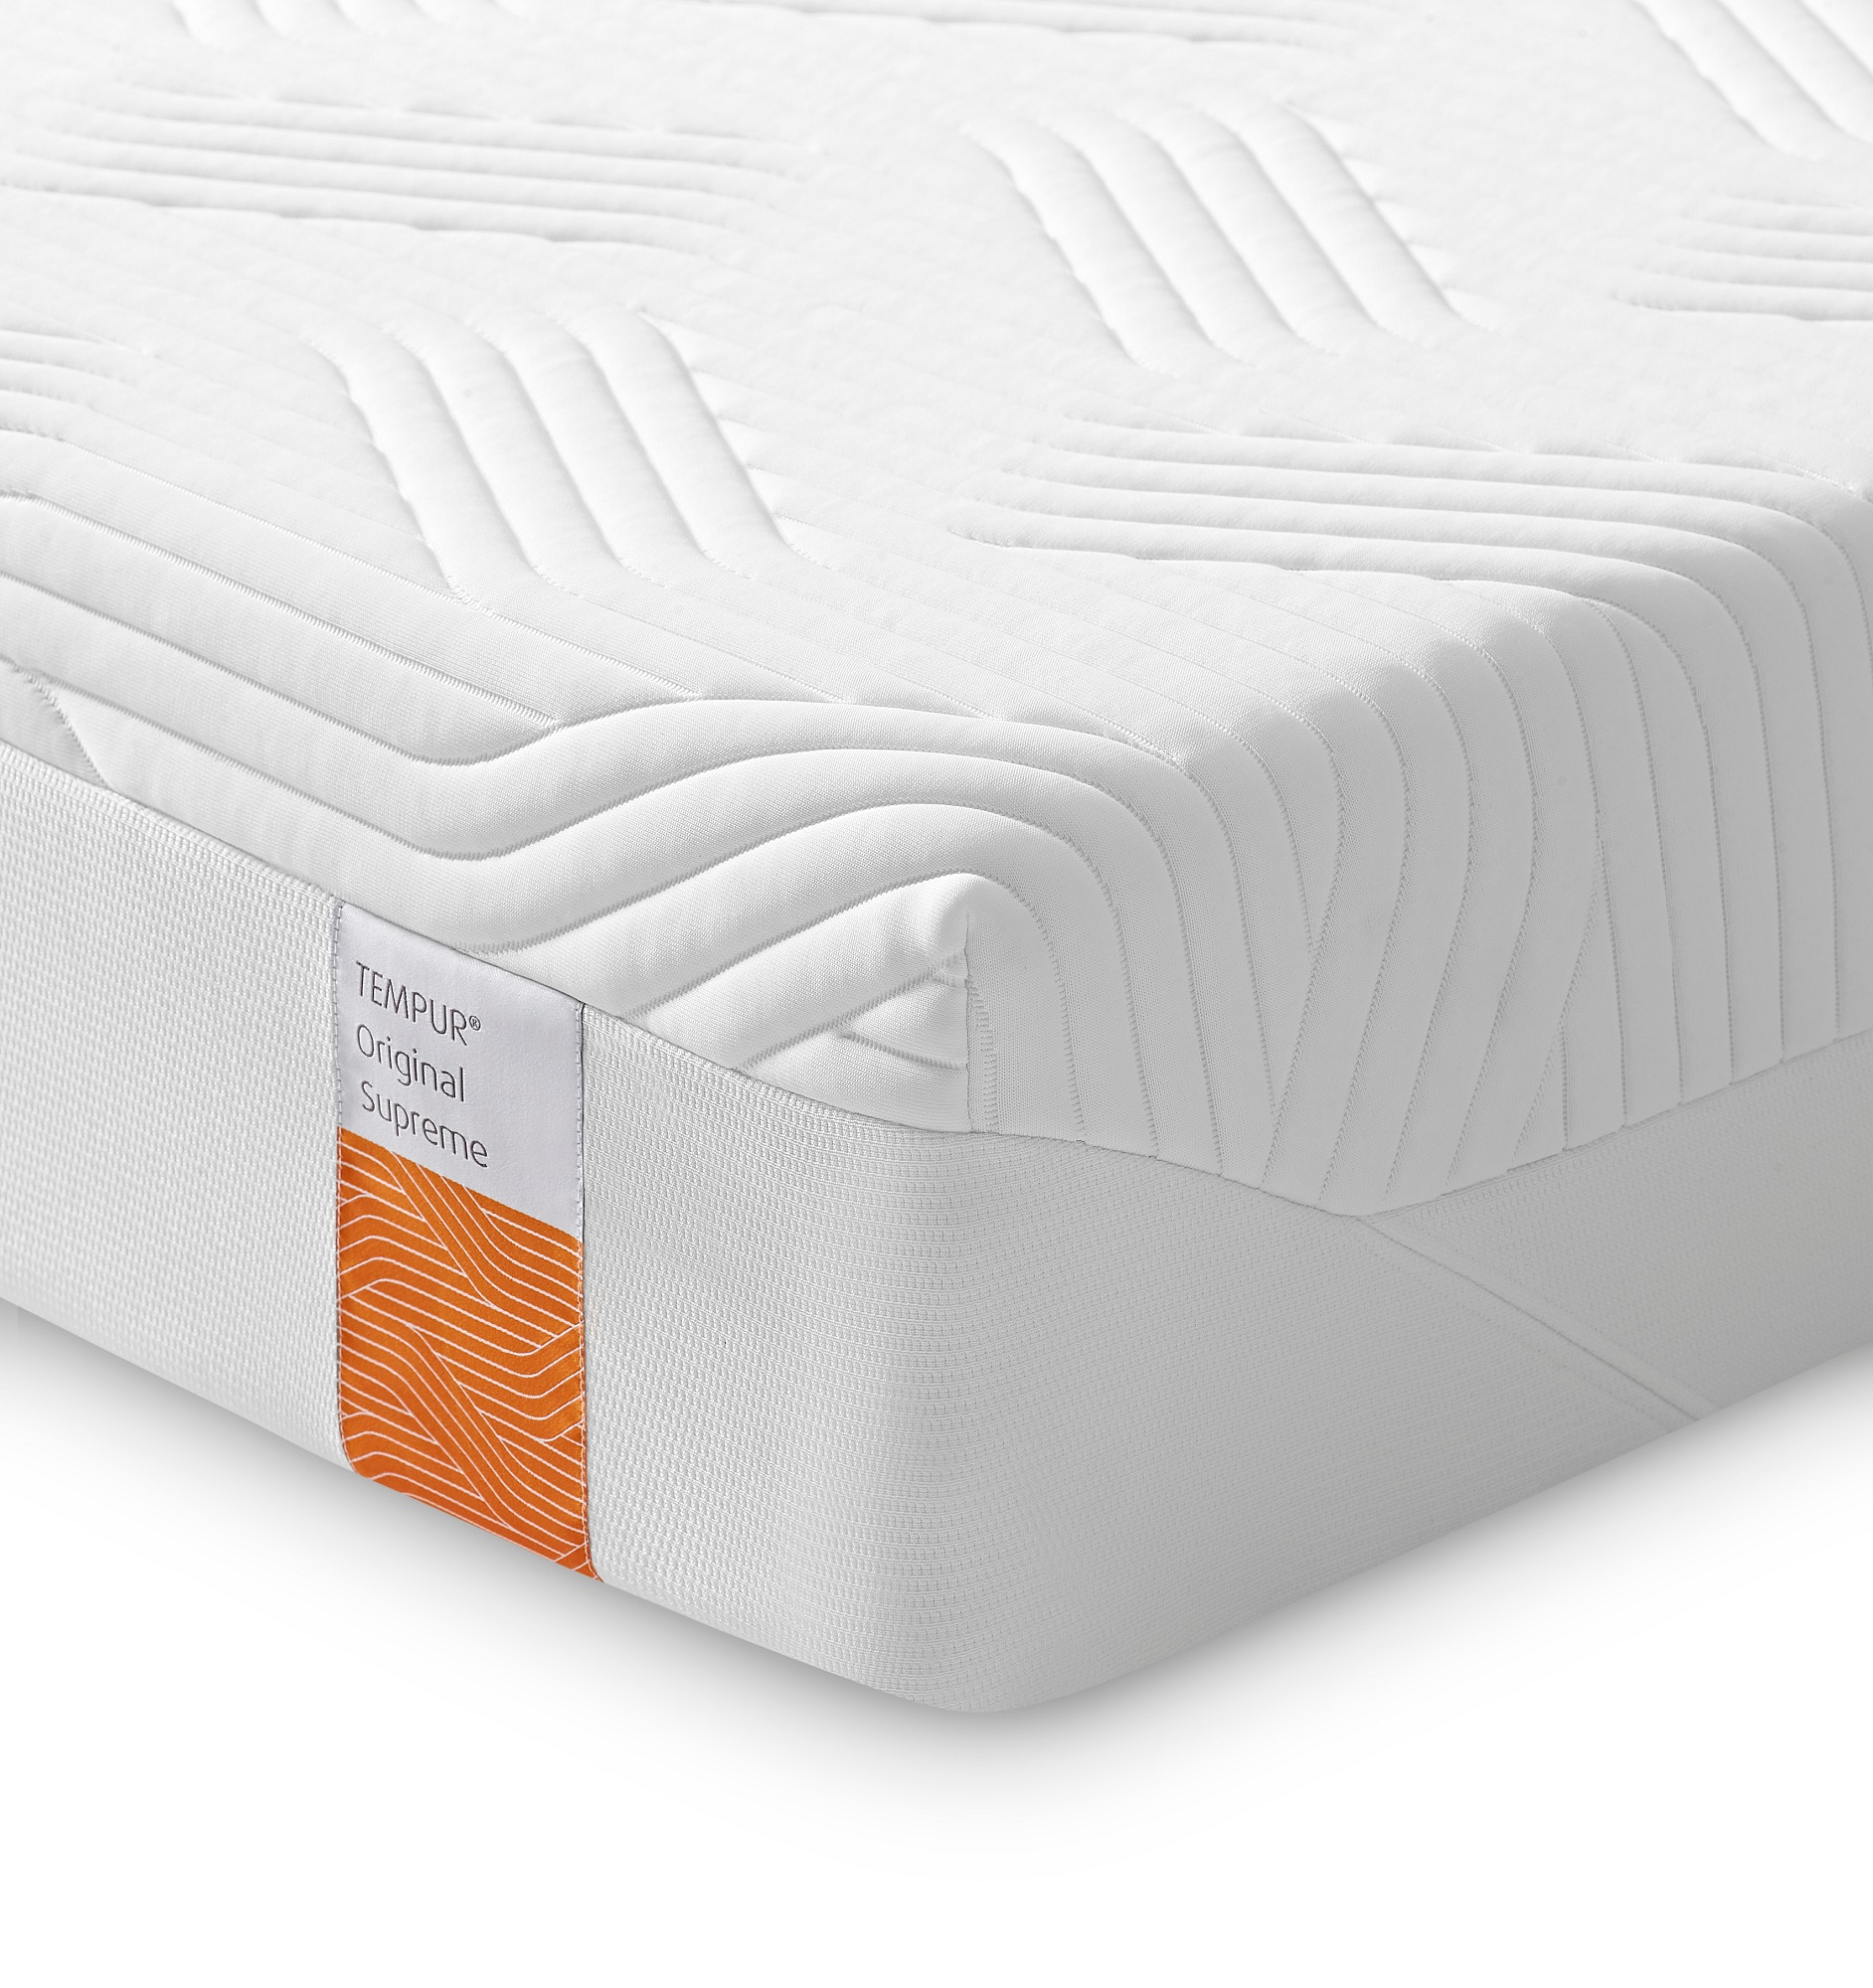 Tempur Original Supreme Mattress